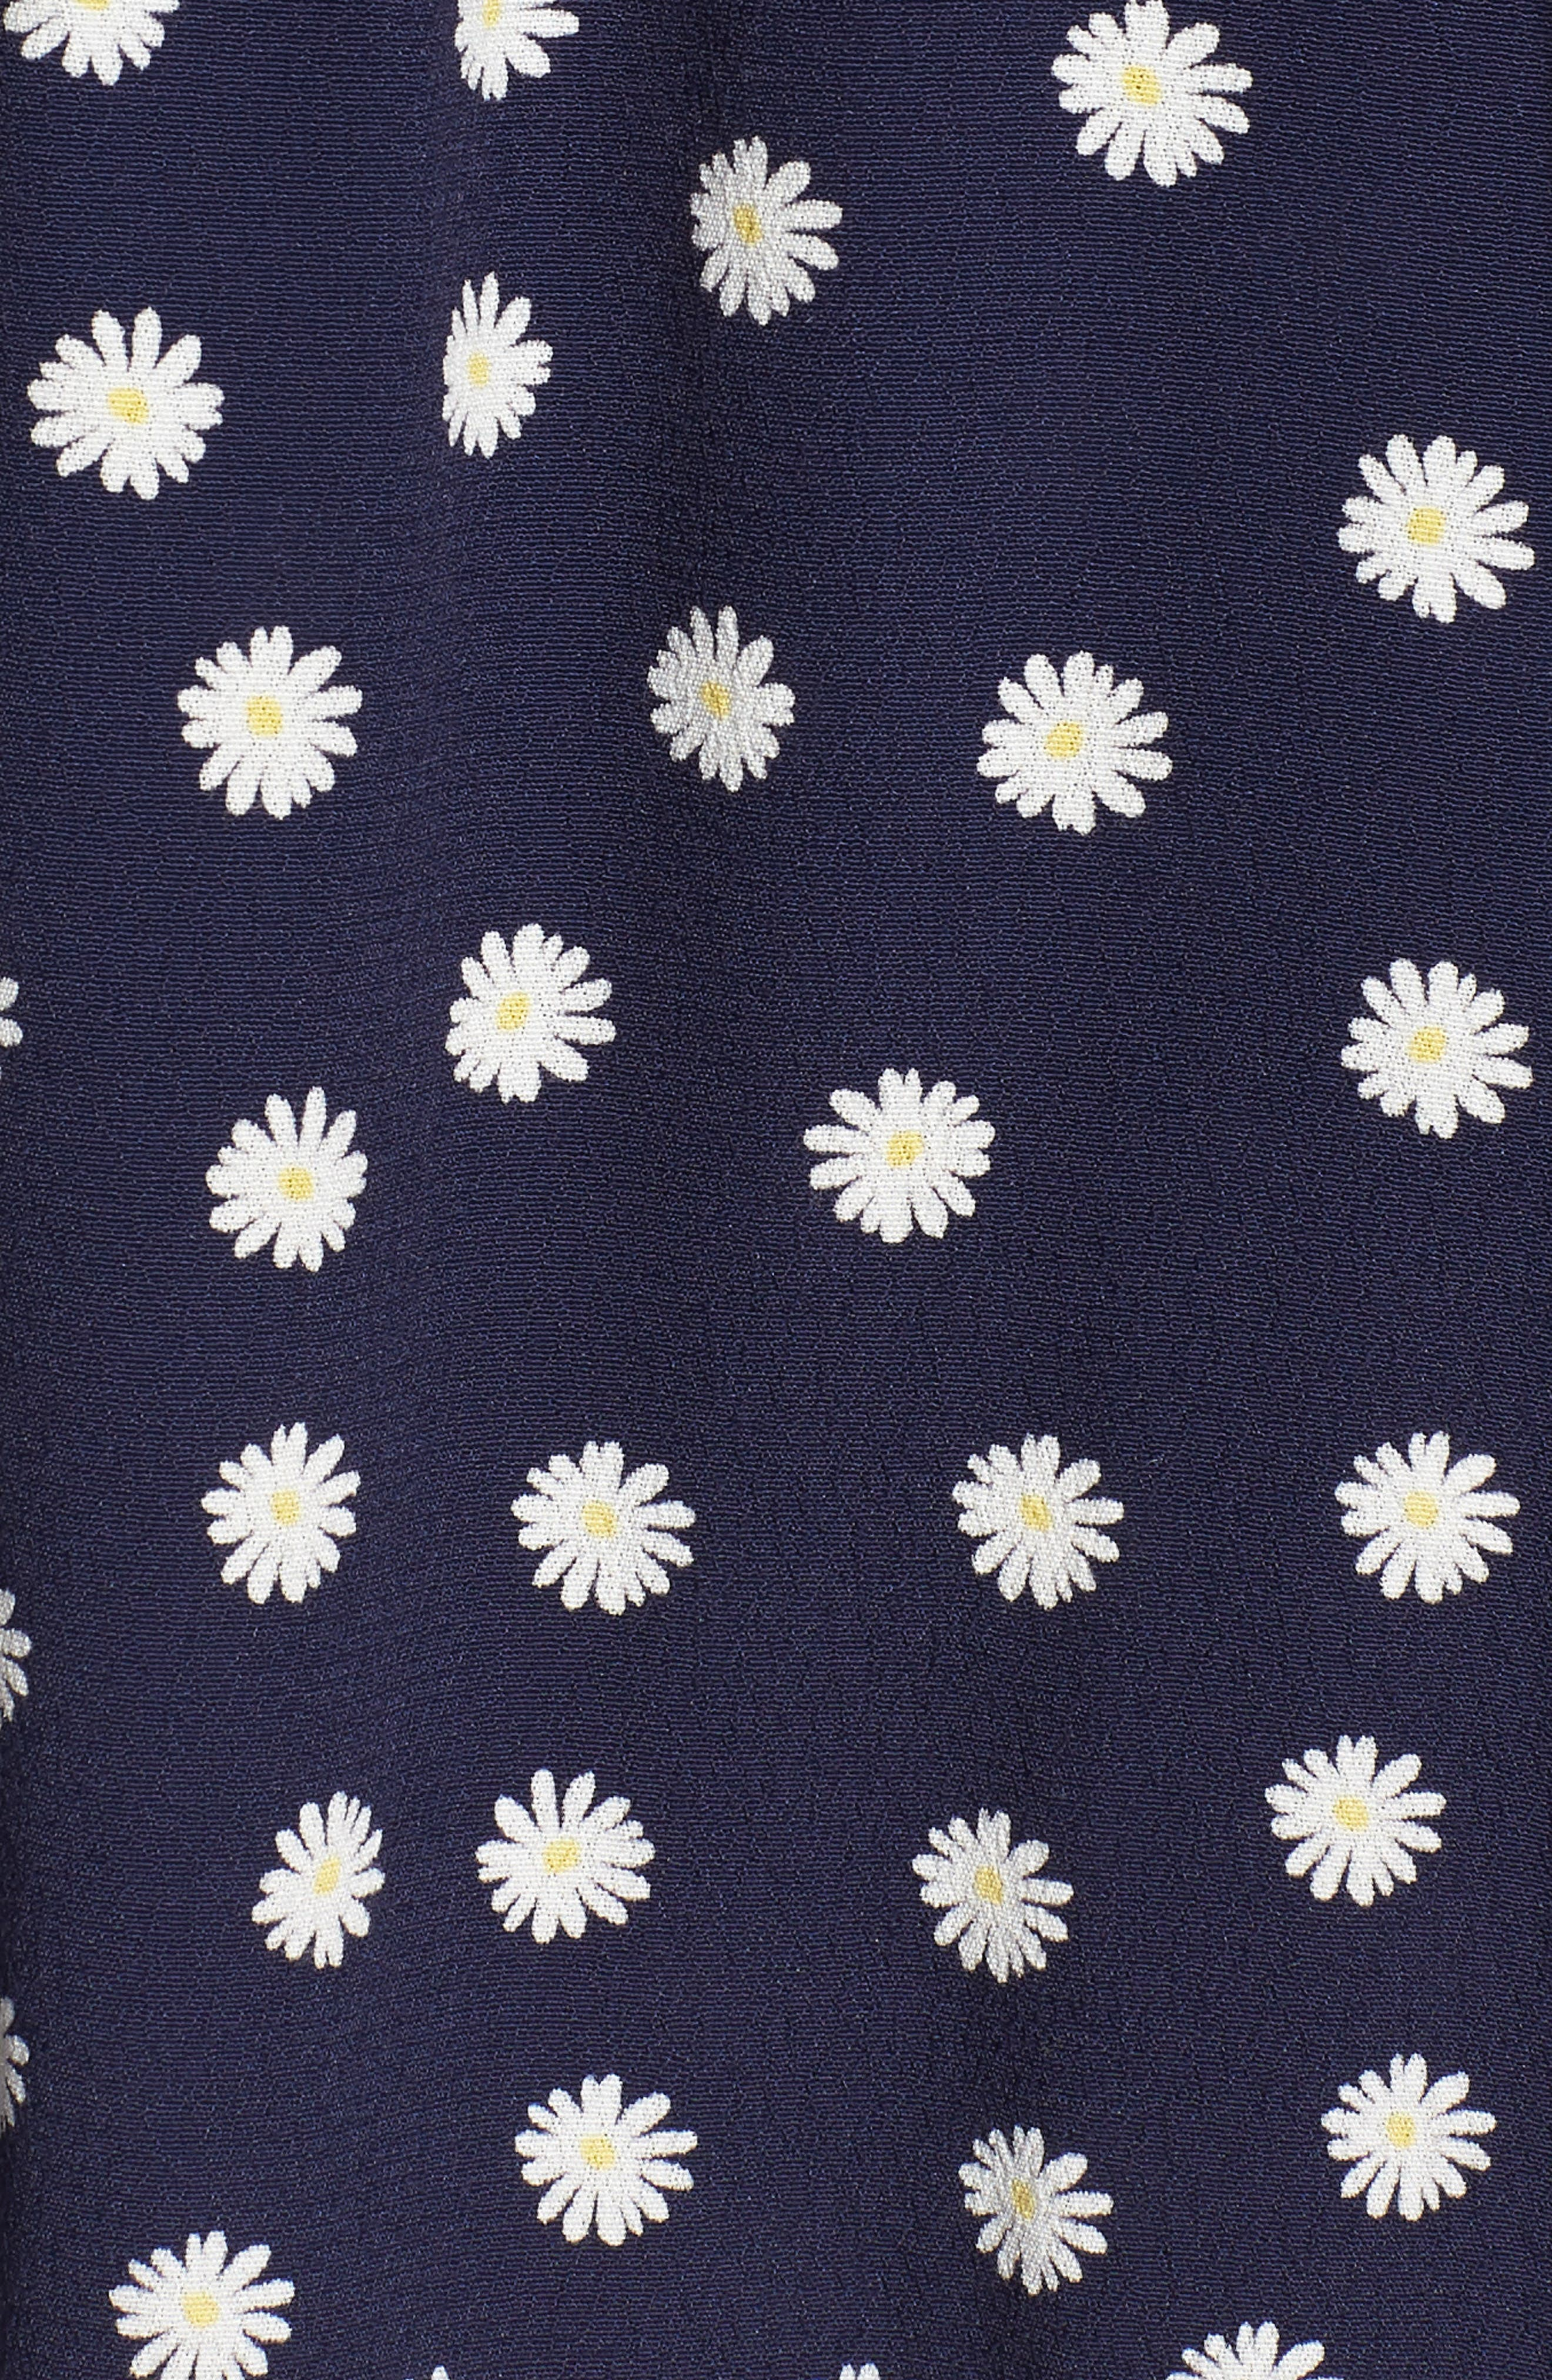 August Daisy Tie Front Dress,                             Alternate thumbnail 6, color,                             Navy Daisies